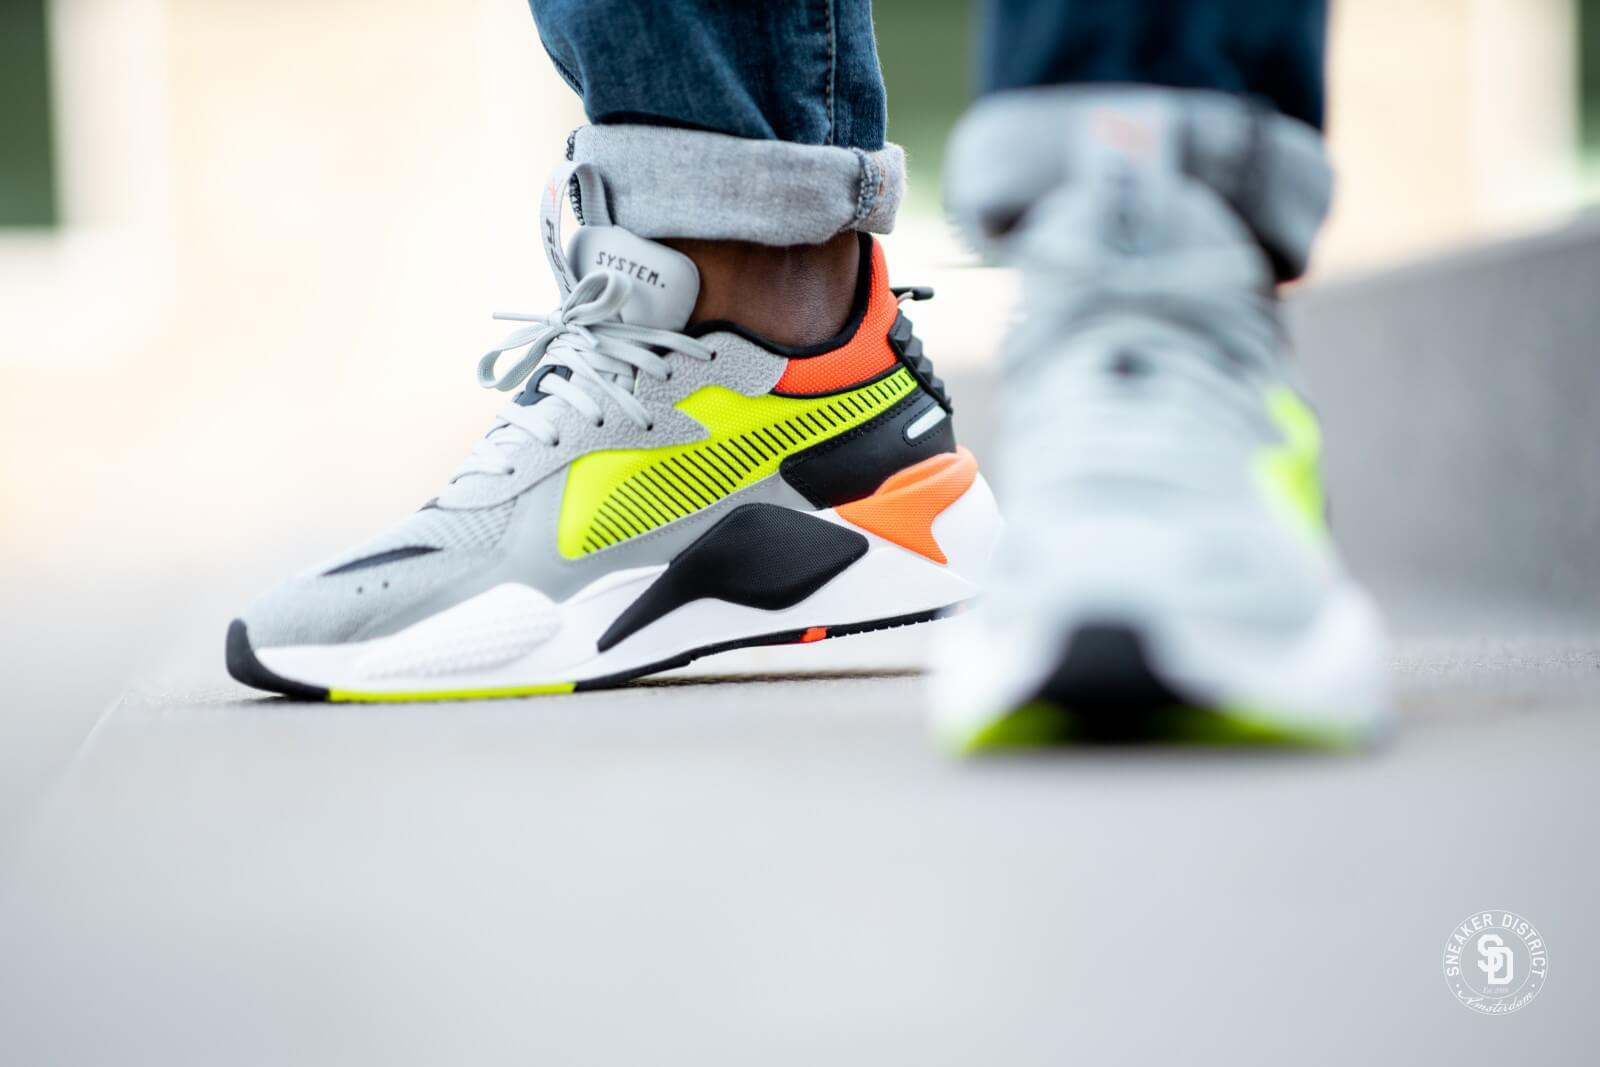 Puma RS-X Hard Drive High Rise/Yellow Alert - 369818-01